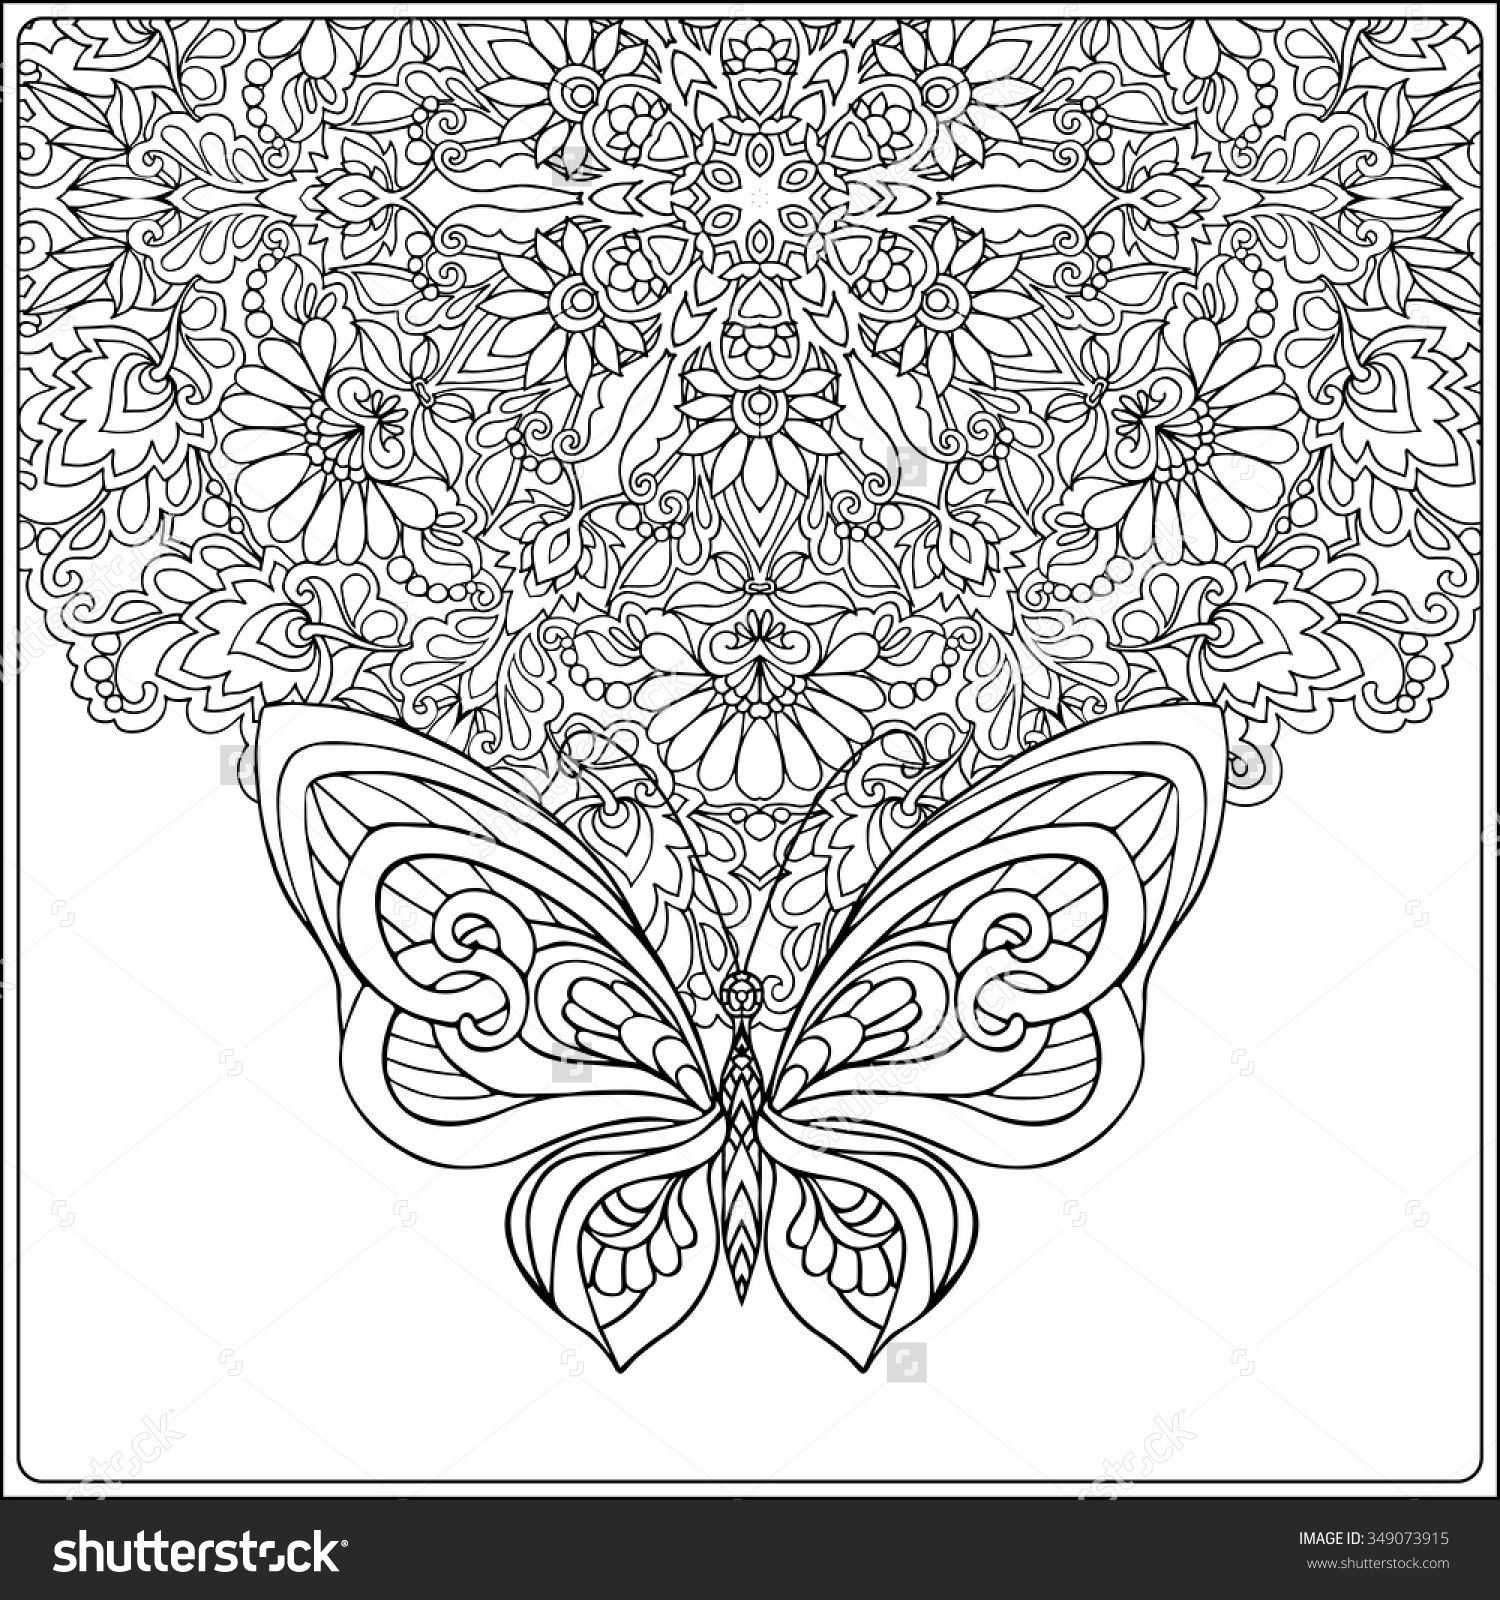 Floral Mandala Colouring Pages For Adults Google Search